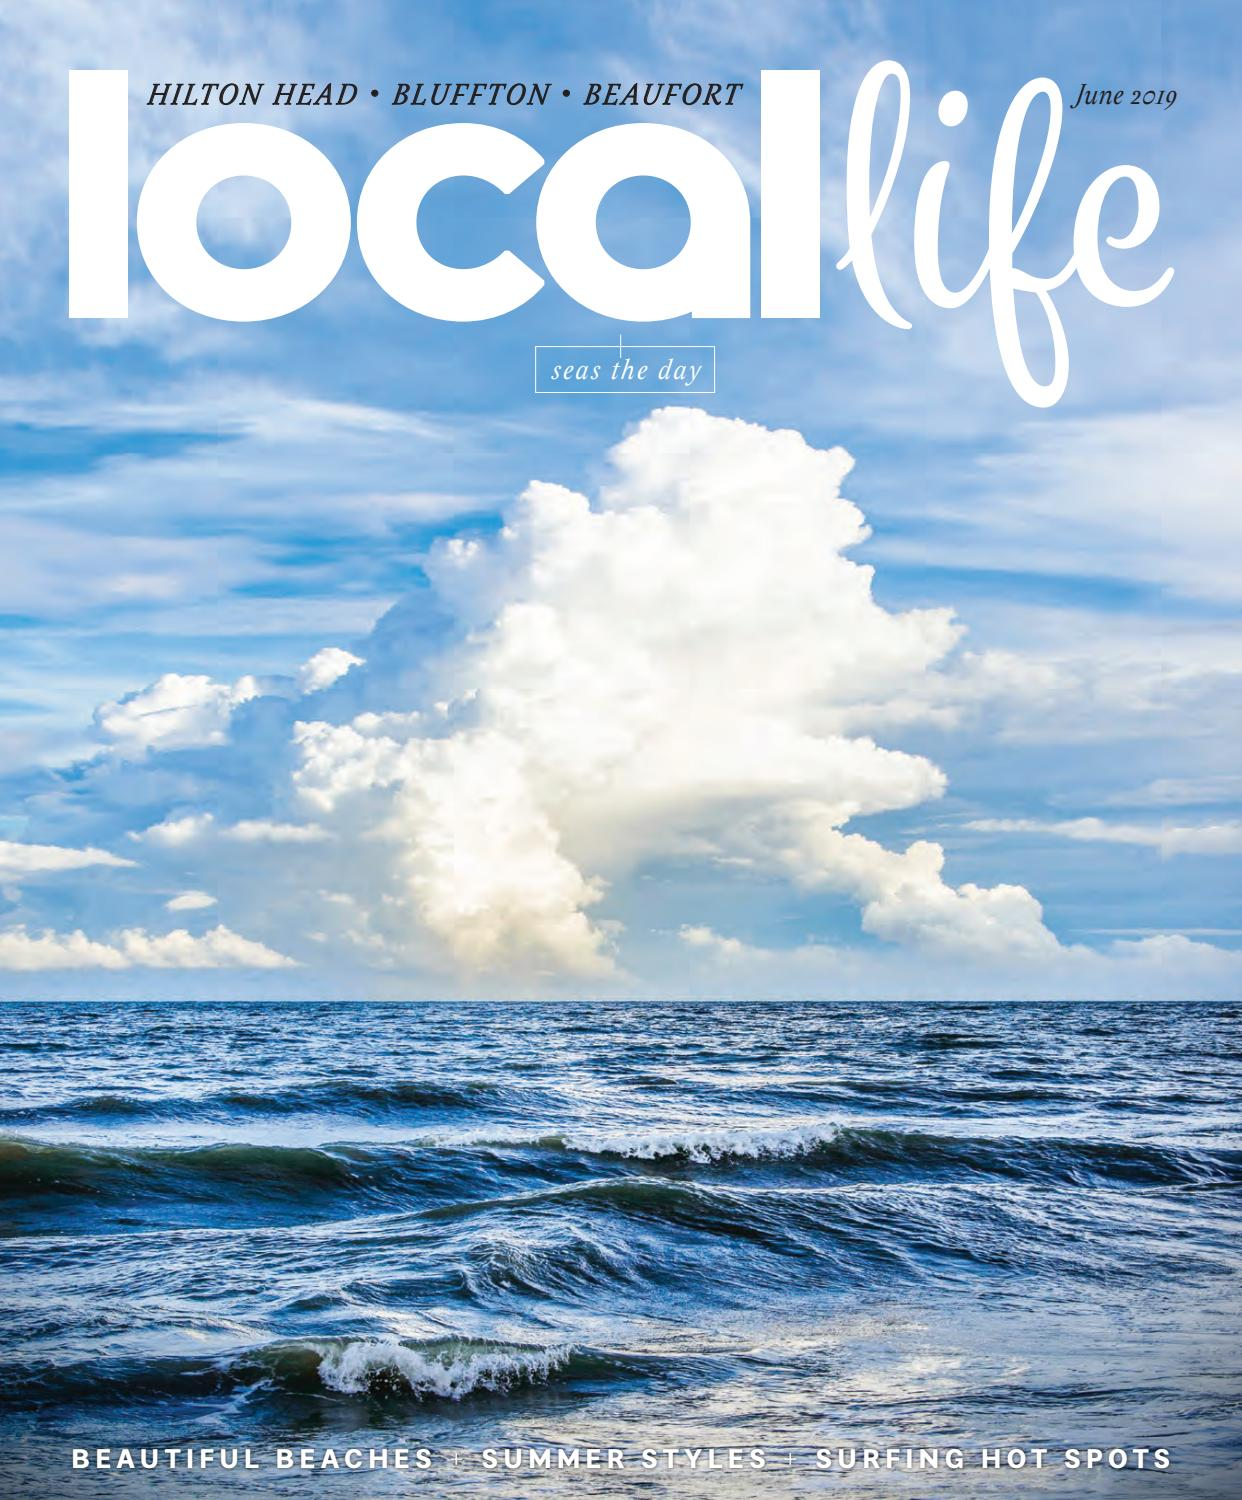 Local Life Magazine June 2019 by LocalLife - issuu